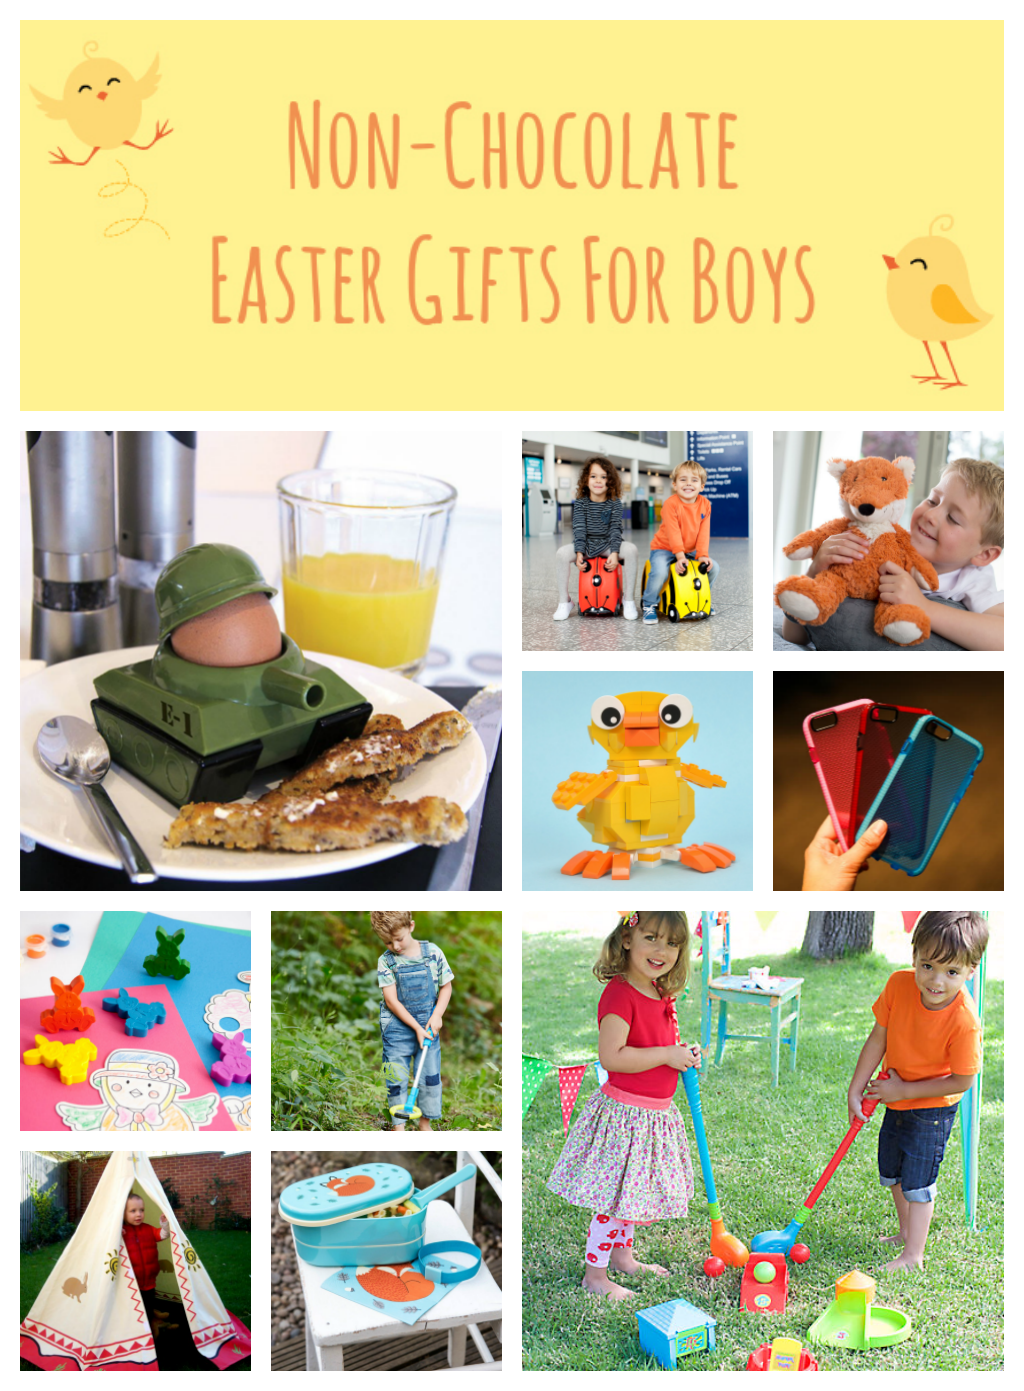 Non-Chocolate Easter Gifts for Boys